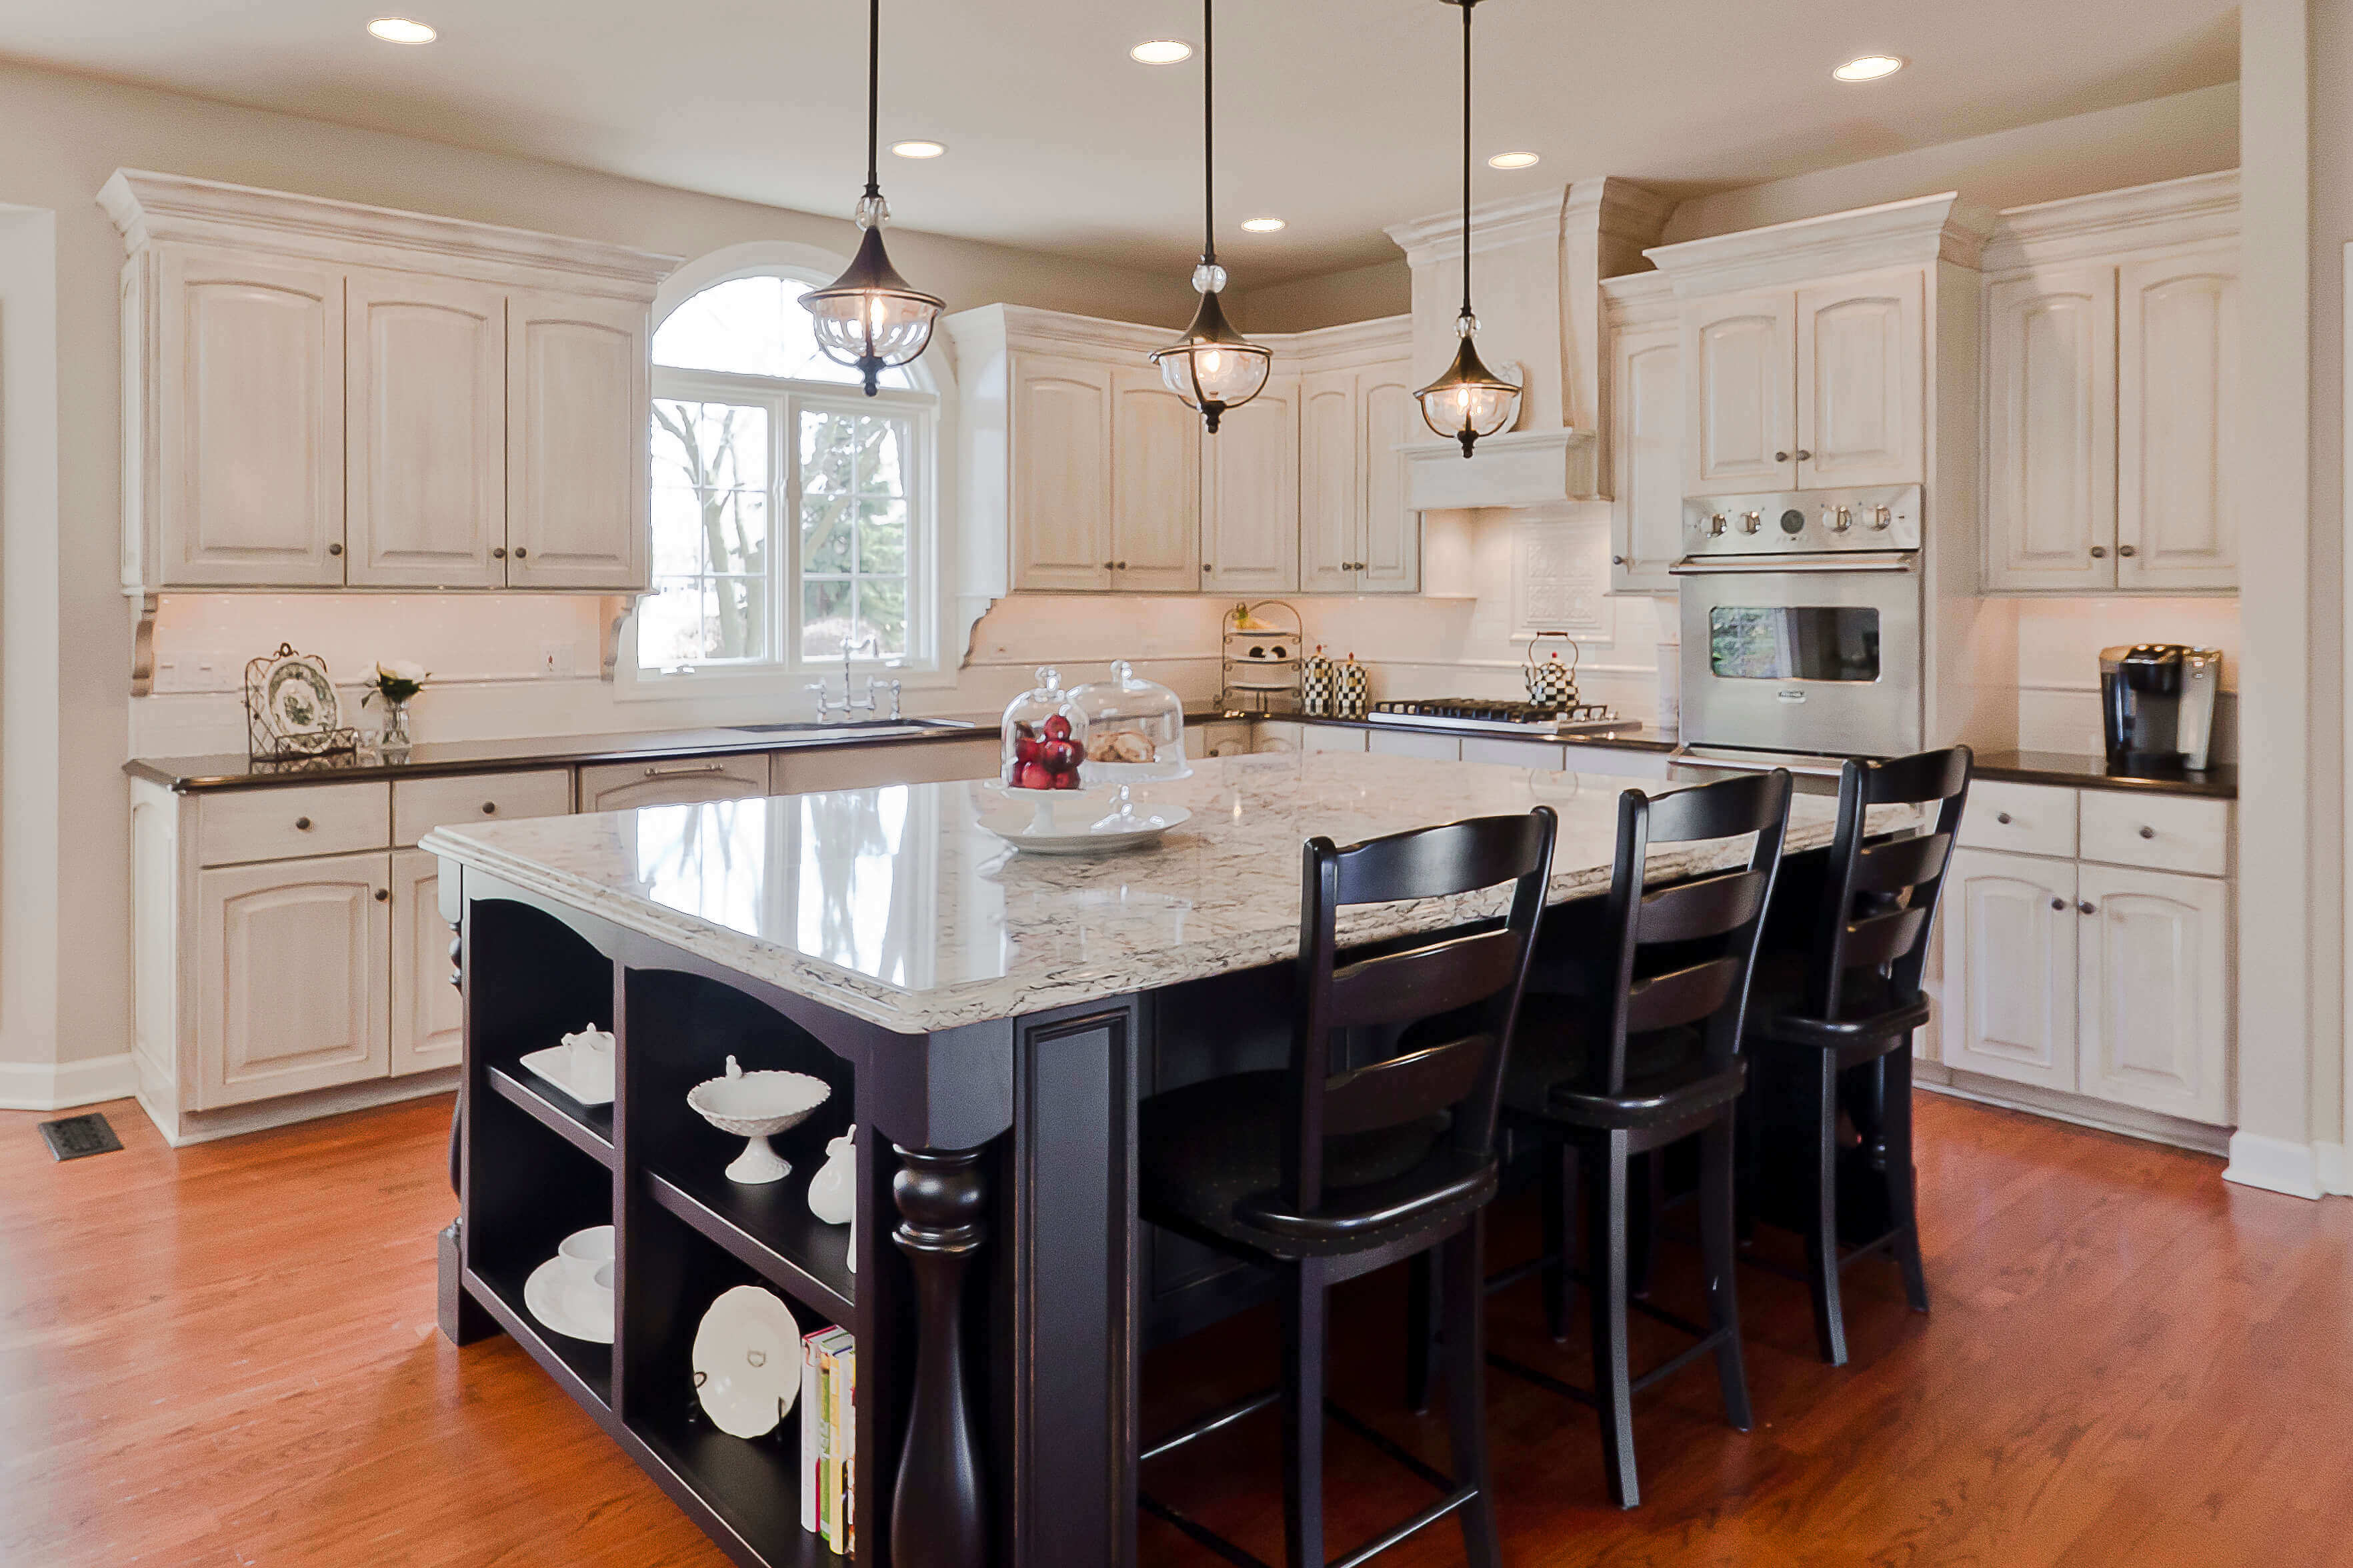 modern island kitchen 78 great looking modern kitchen gallery sinks islands appliances lights backsplashes 205